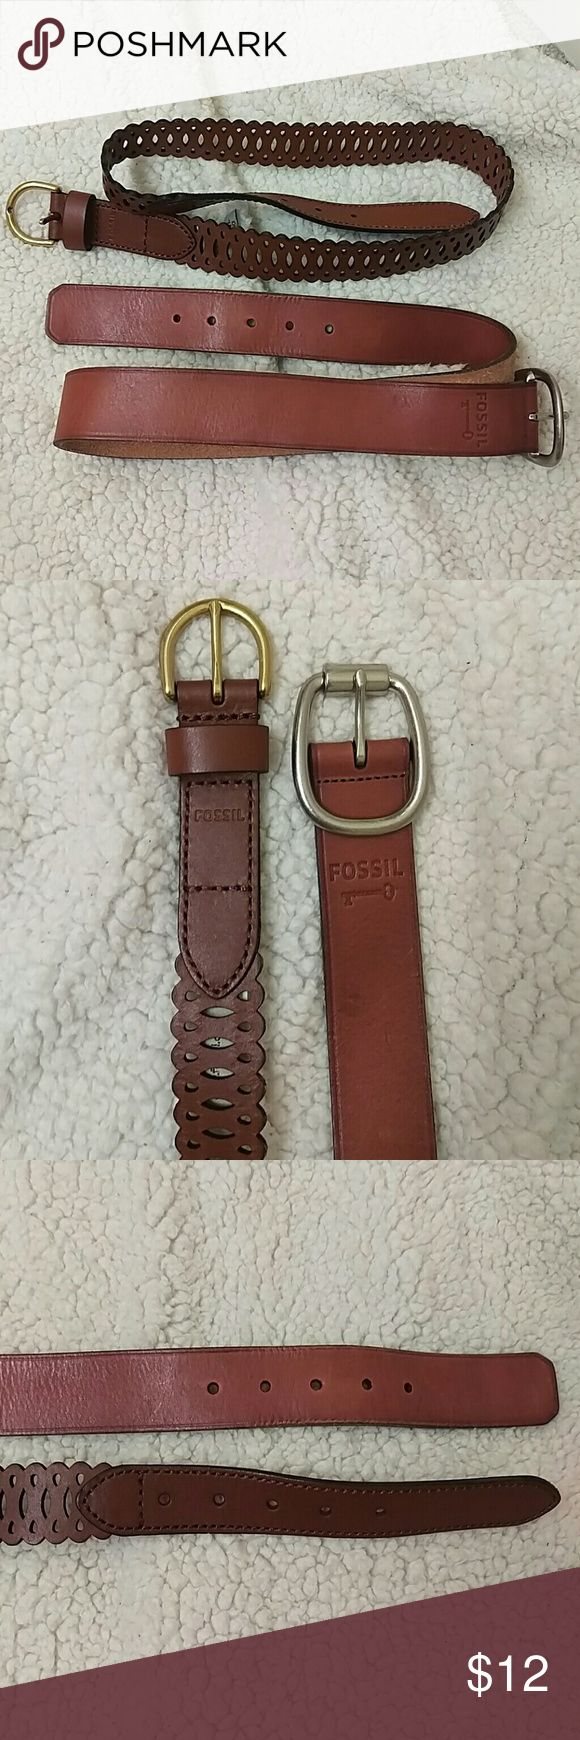 Lot of 2 small leather Fossil brand belts I have never worn these. 2 Fossil brand Leather belts in excellent condition. Both size small Fossil Accessories Belts